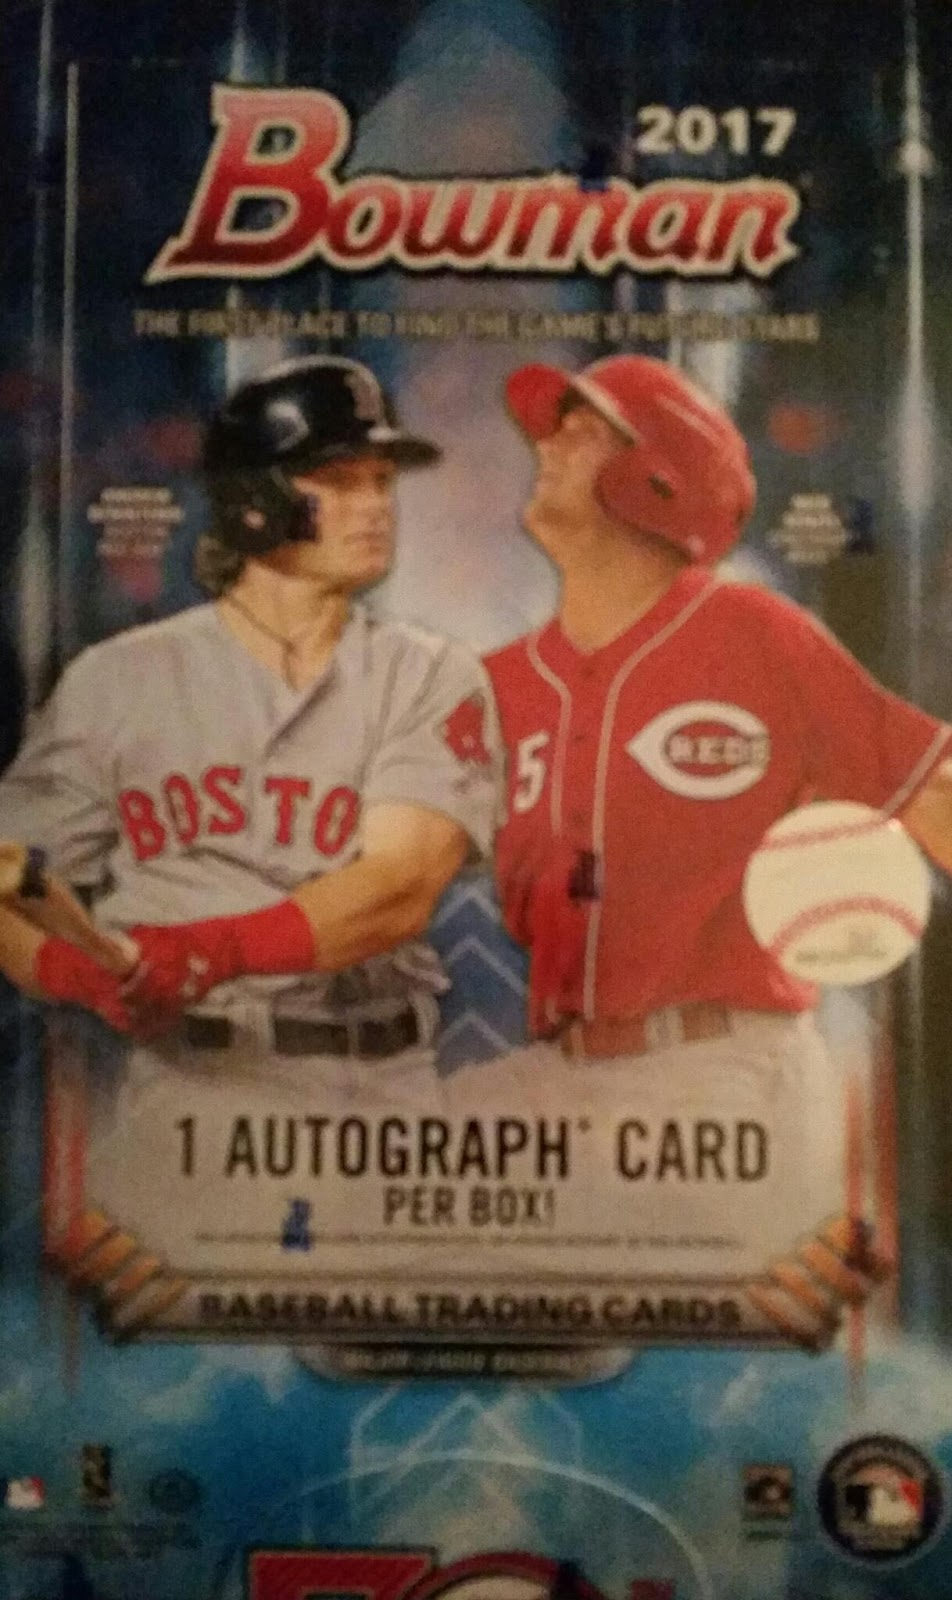 Sport Card Collectors Review2017 Bowman Baseball Nice